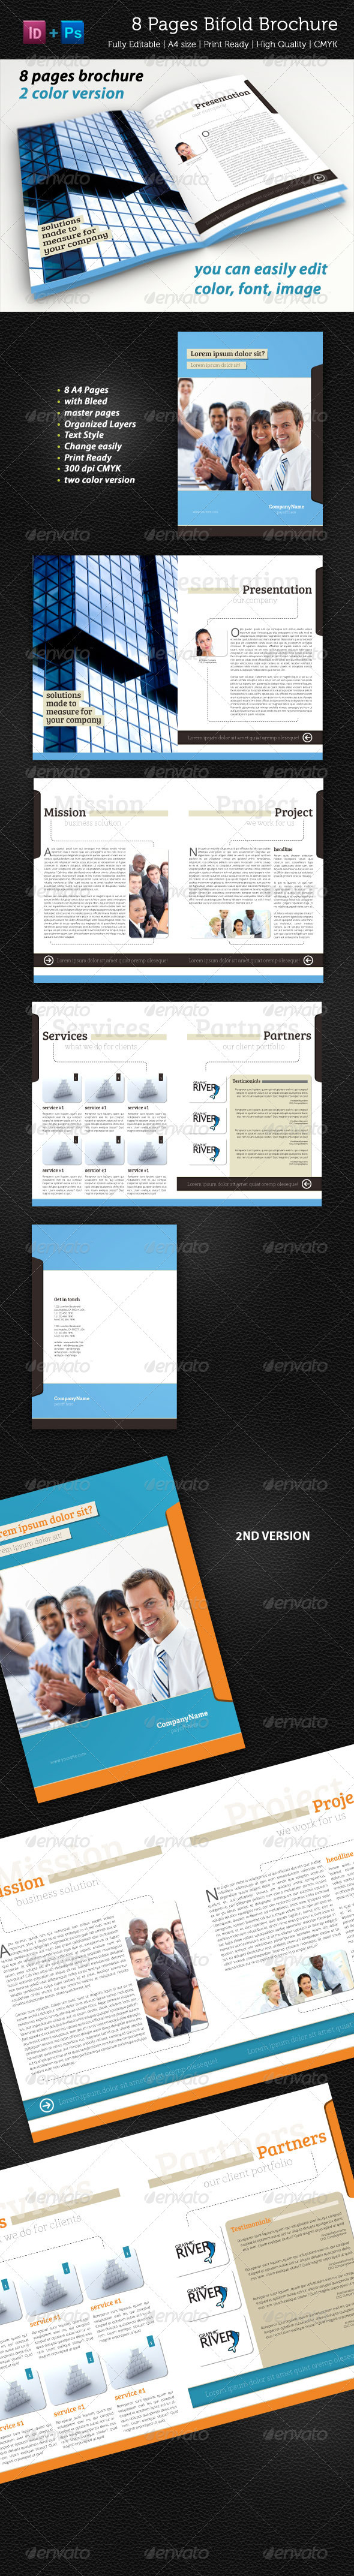 8 Pages Bifold Brochure - Corporate Brochures